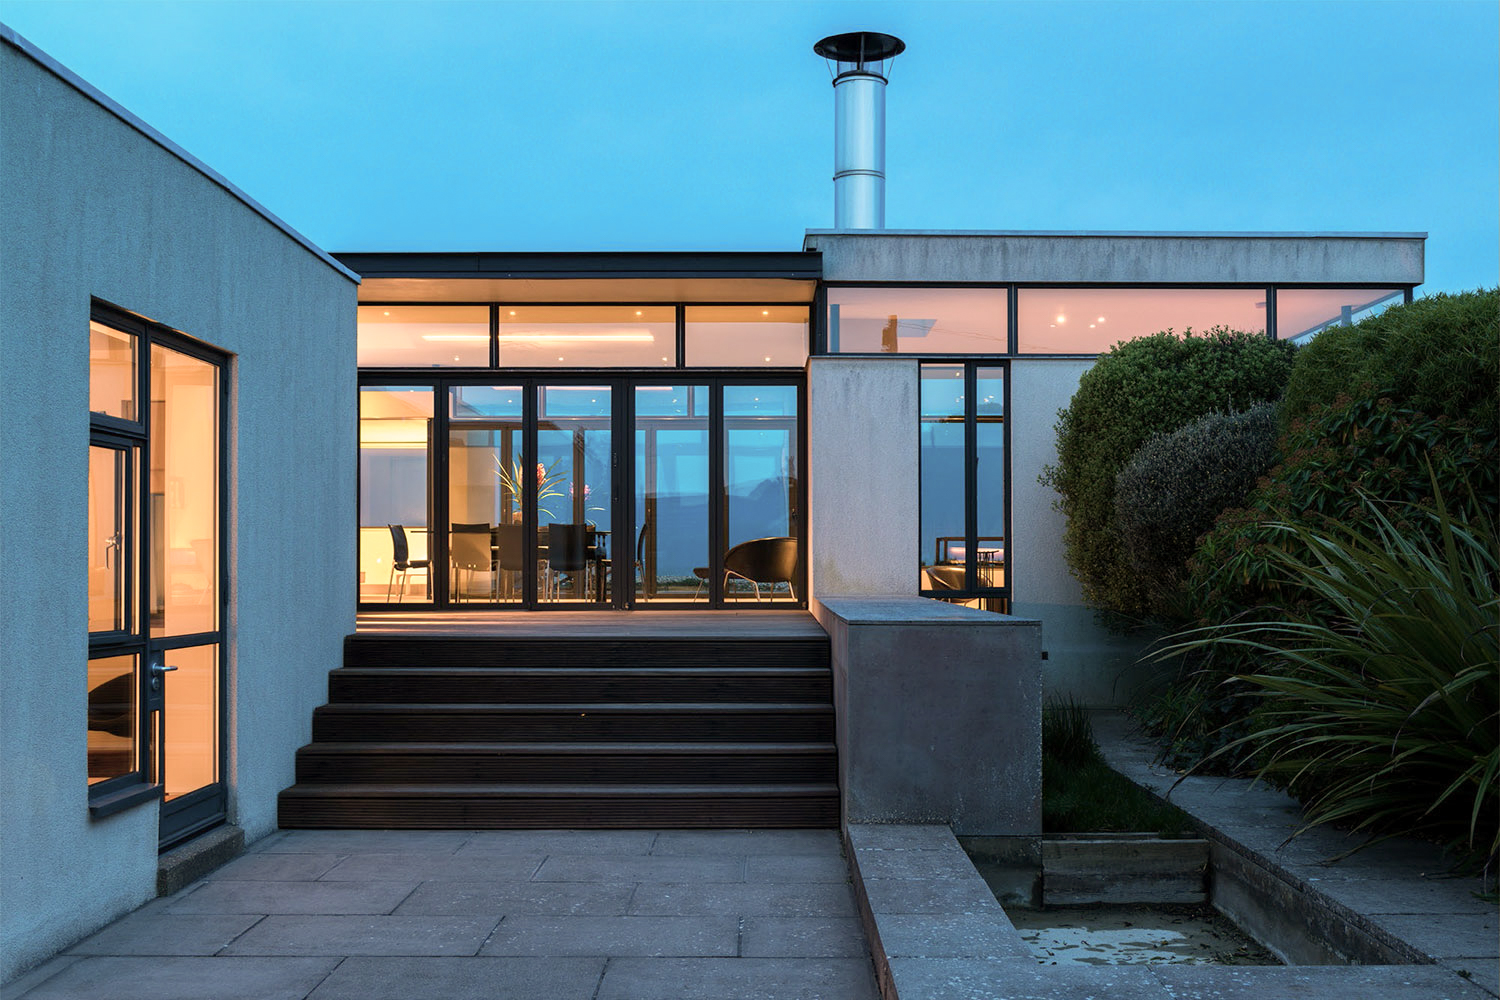 PAGHAM BEACH HOUSE - West Sussex, Great Britain, UK